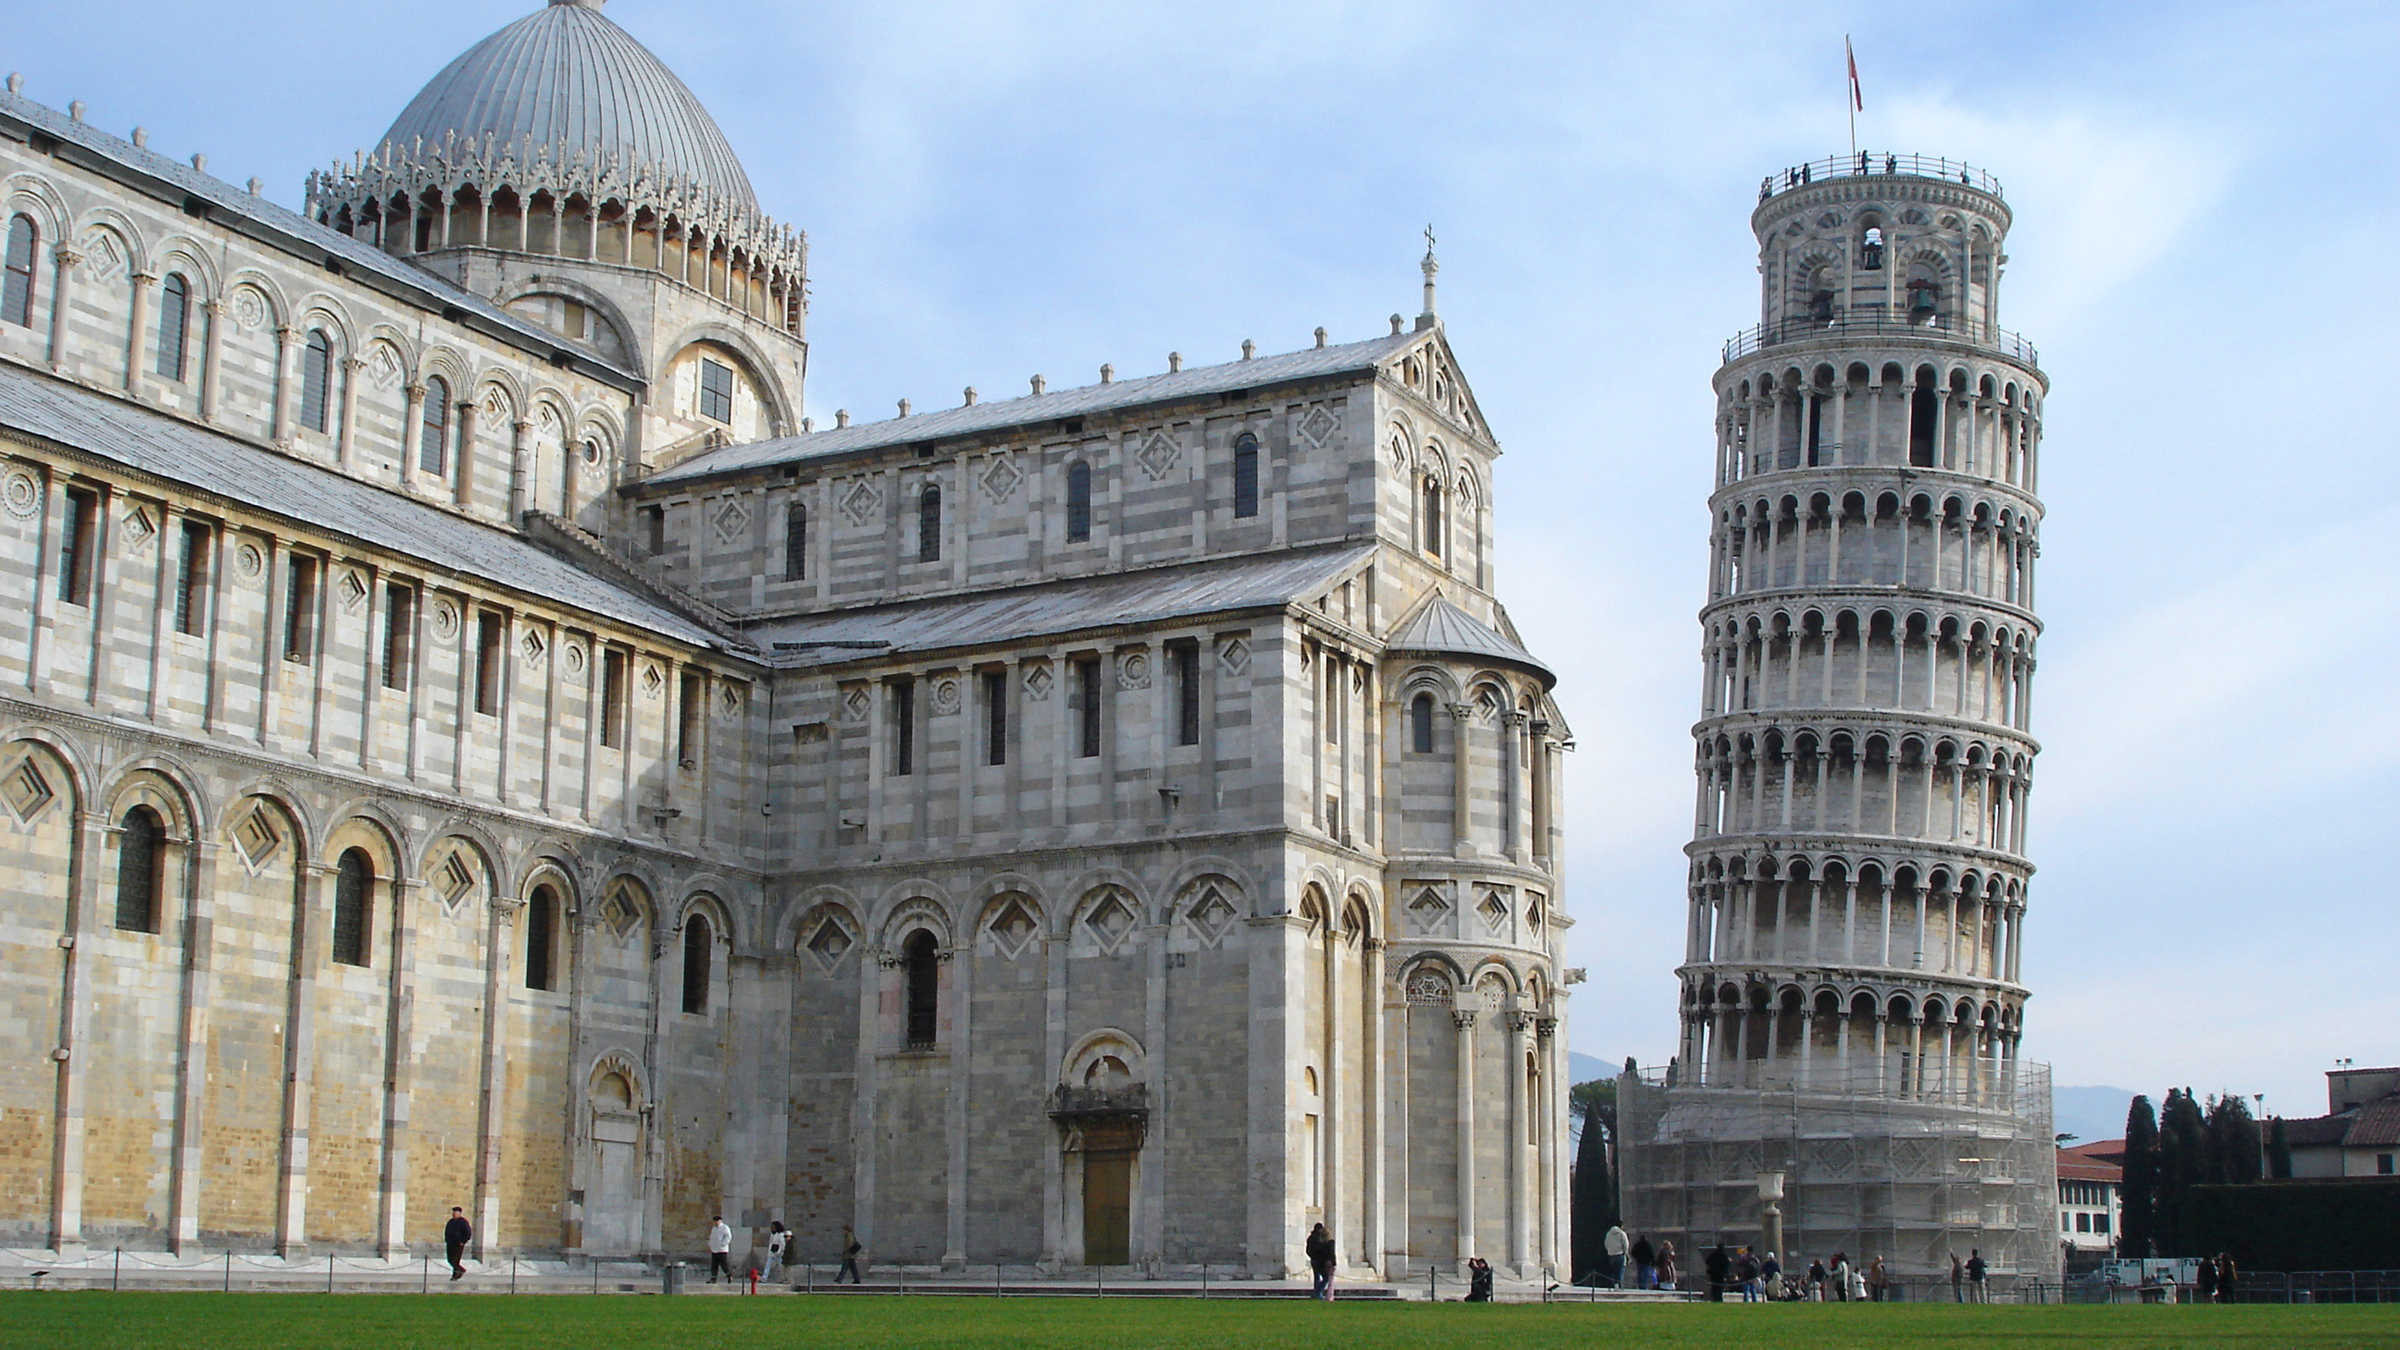 The Piazza del Duomo with the Leaning Tower in Pisa, Italy